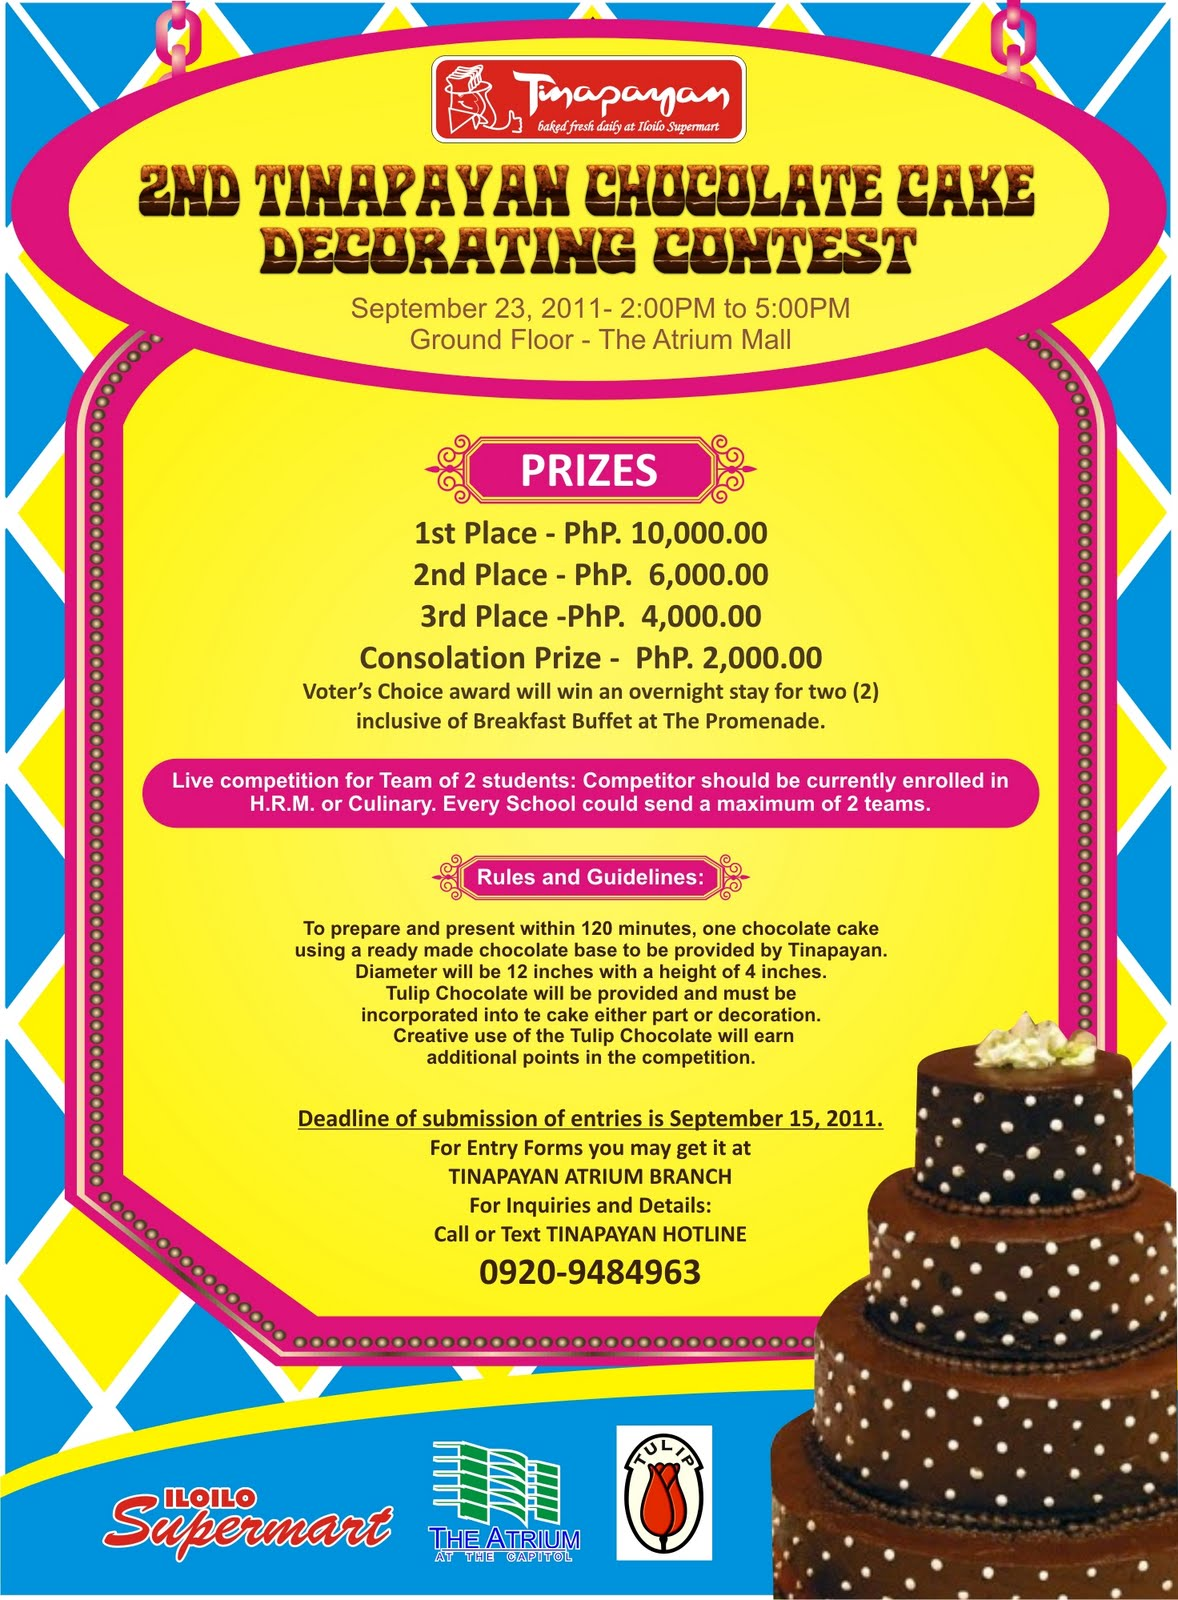 Cake Decorating Competition Guidelines : Tinapayan Chocolate Cake Decorating Contest 2011 ...